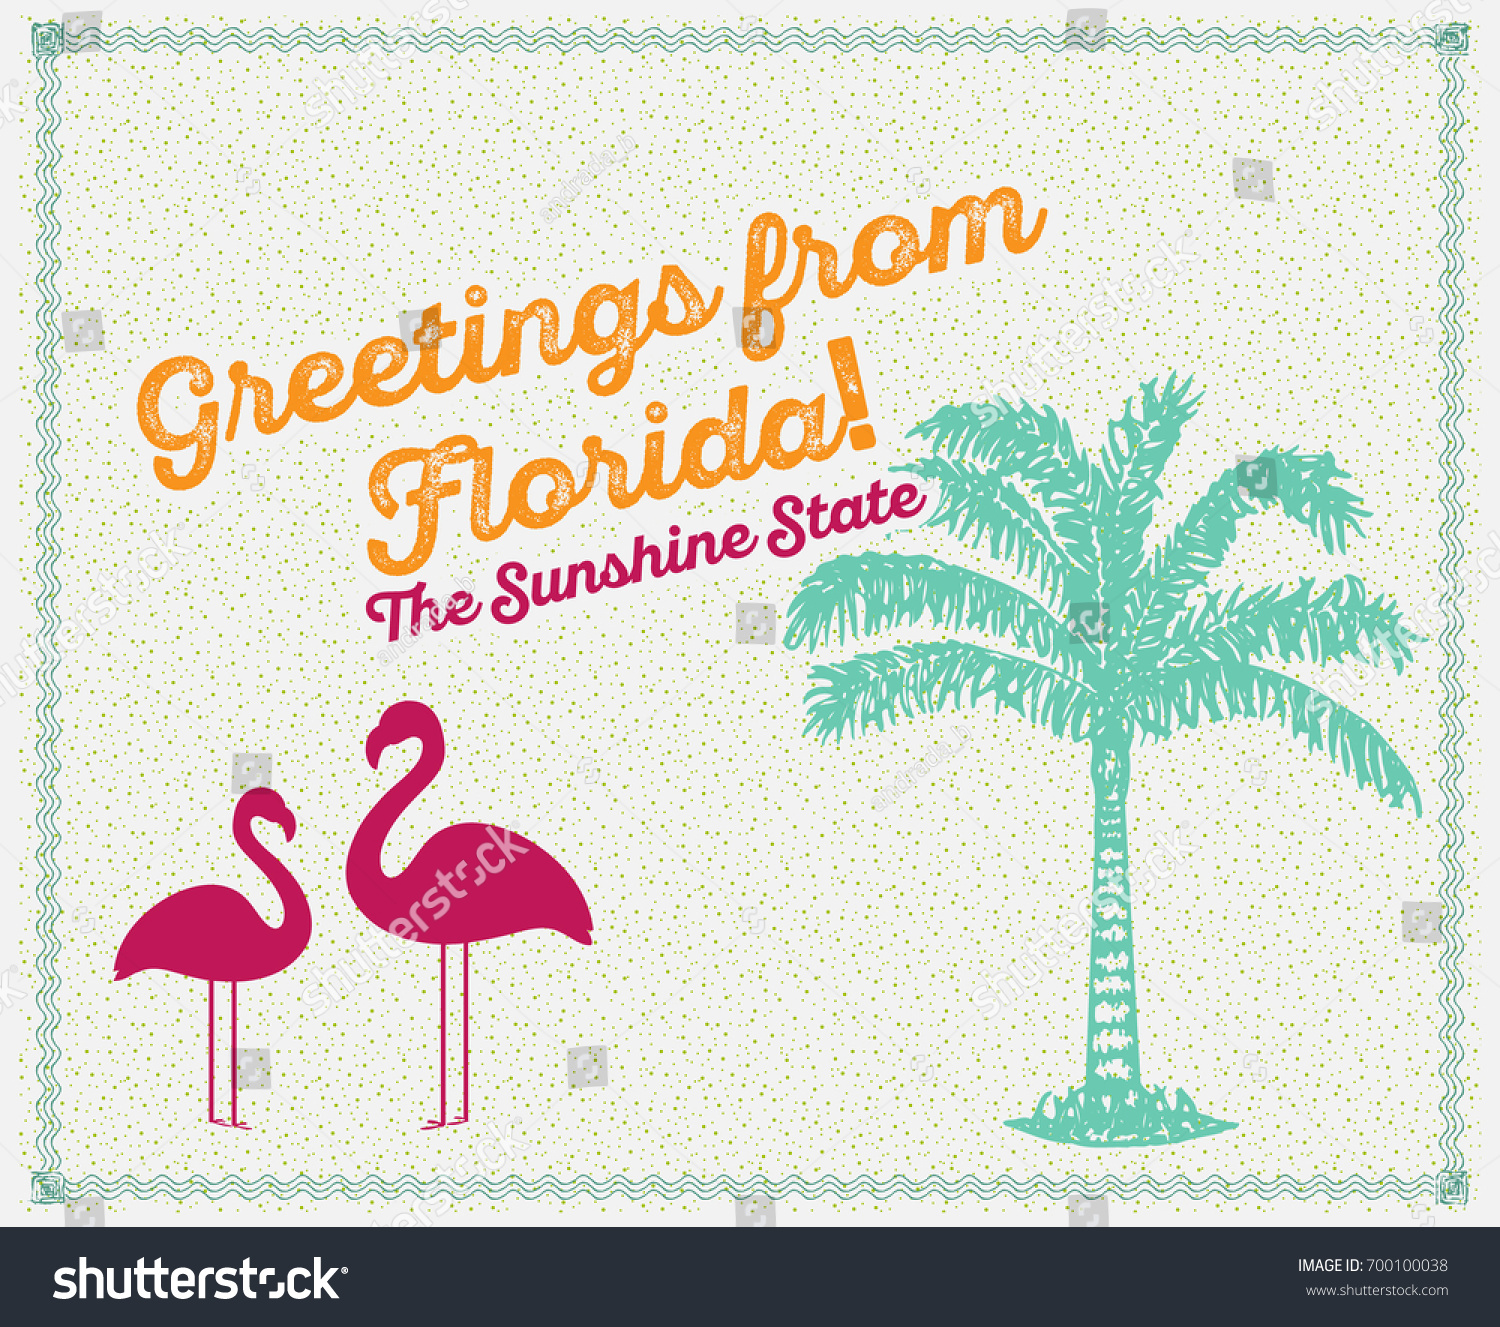 Greetings florida card poster sunshine state stock vector greetings from florida card poster sunshine state palm tree flamingo kristyandbryce Image collections